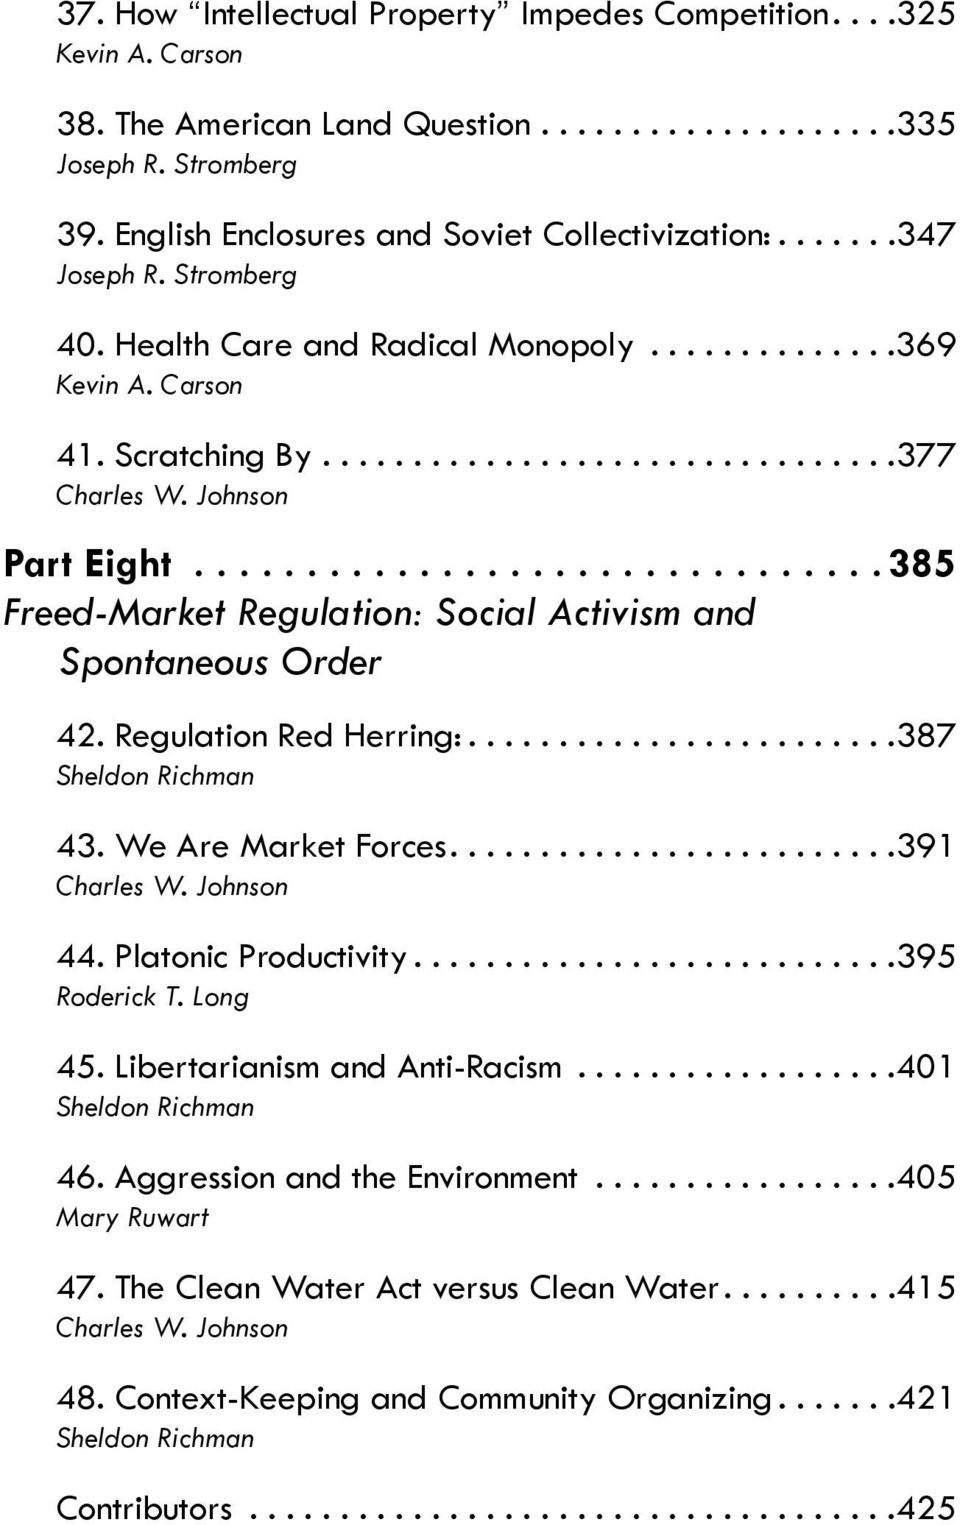 .. 385 Freed-Market Regulation: Social Activism and Spontaneous Order 42. Regulation Red Herring:... 387 Sheldon Richman 43. We Are Market Forces.... 391 Charles W. Johnson 44. Platonic Productivity.